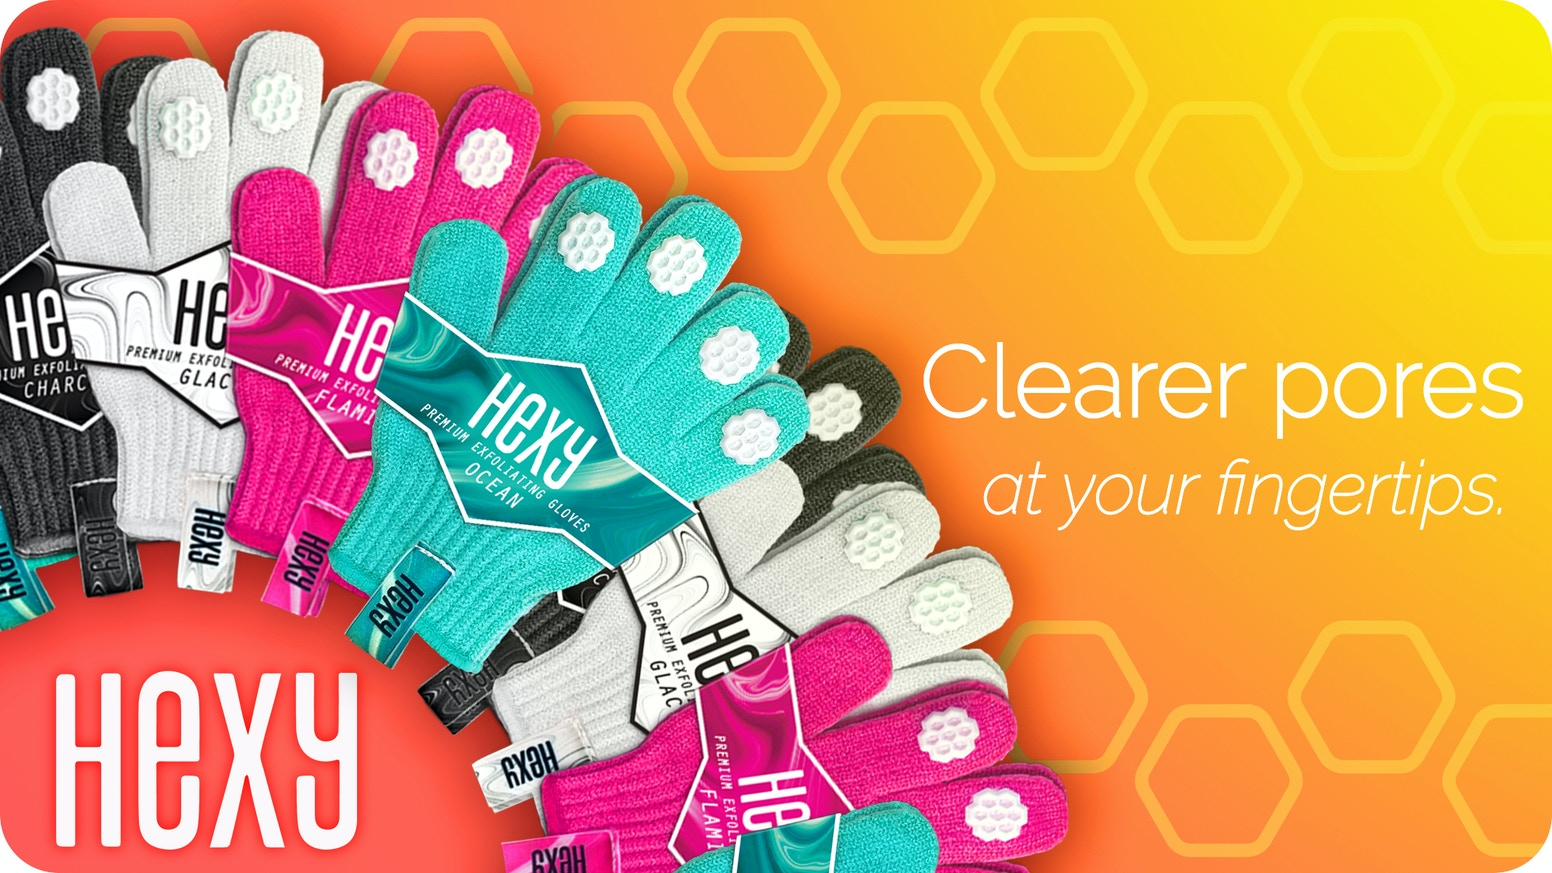 The first EXFOLIATING GLOVES with the POWER of MICRO SUCTION! Stay SEXY with HEXY!